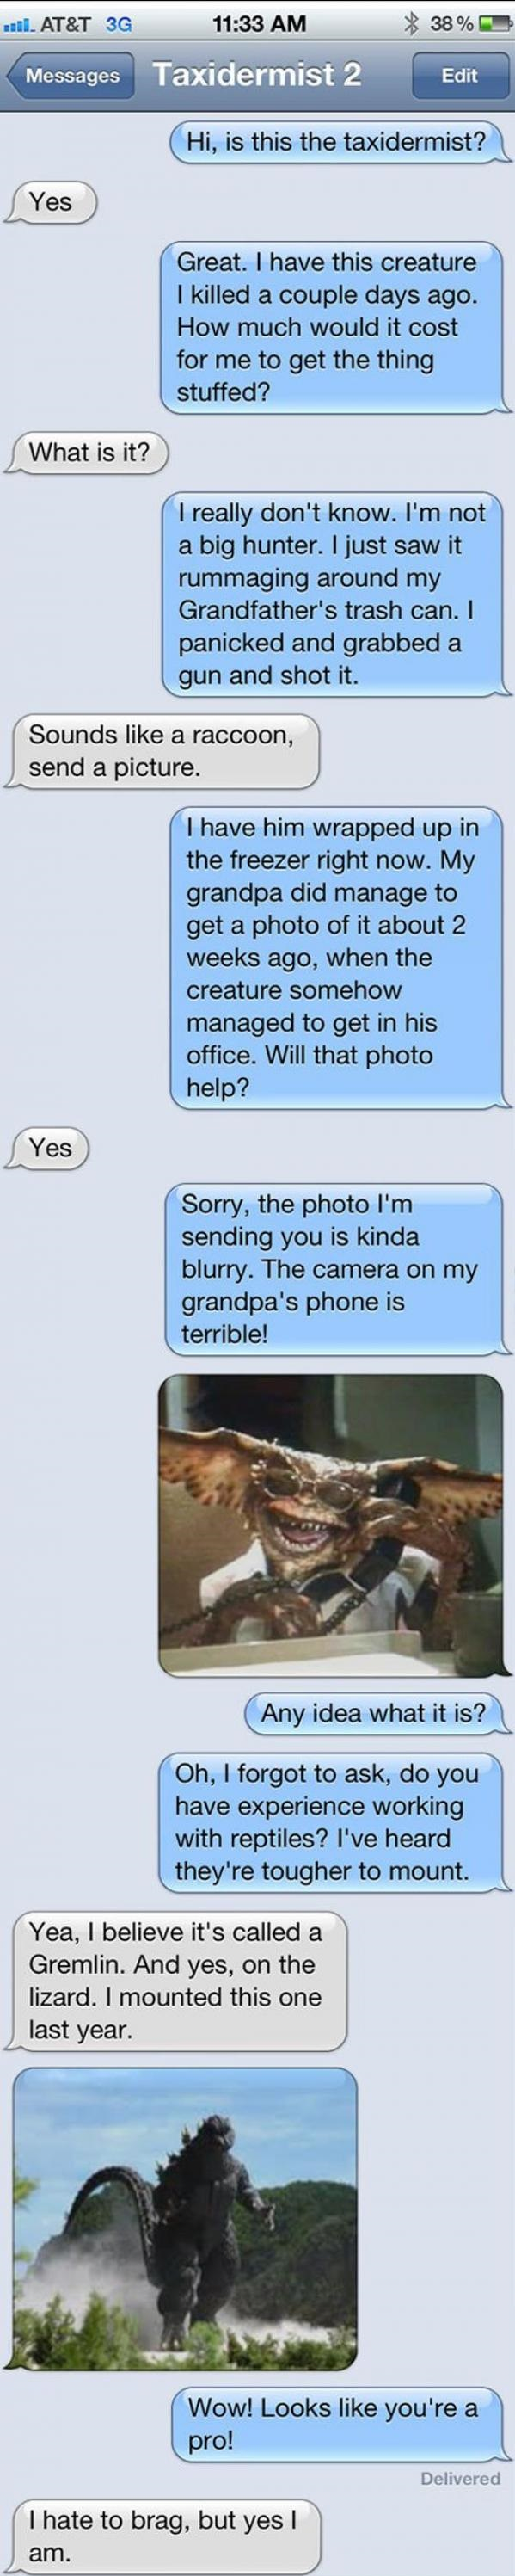 taxidermist-text-compilation-funny